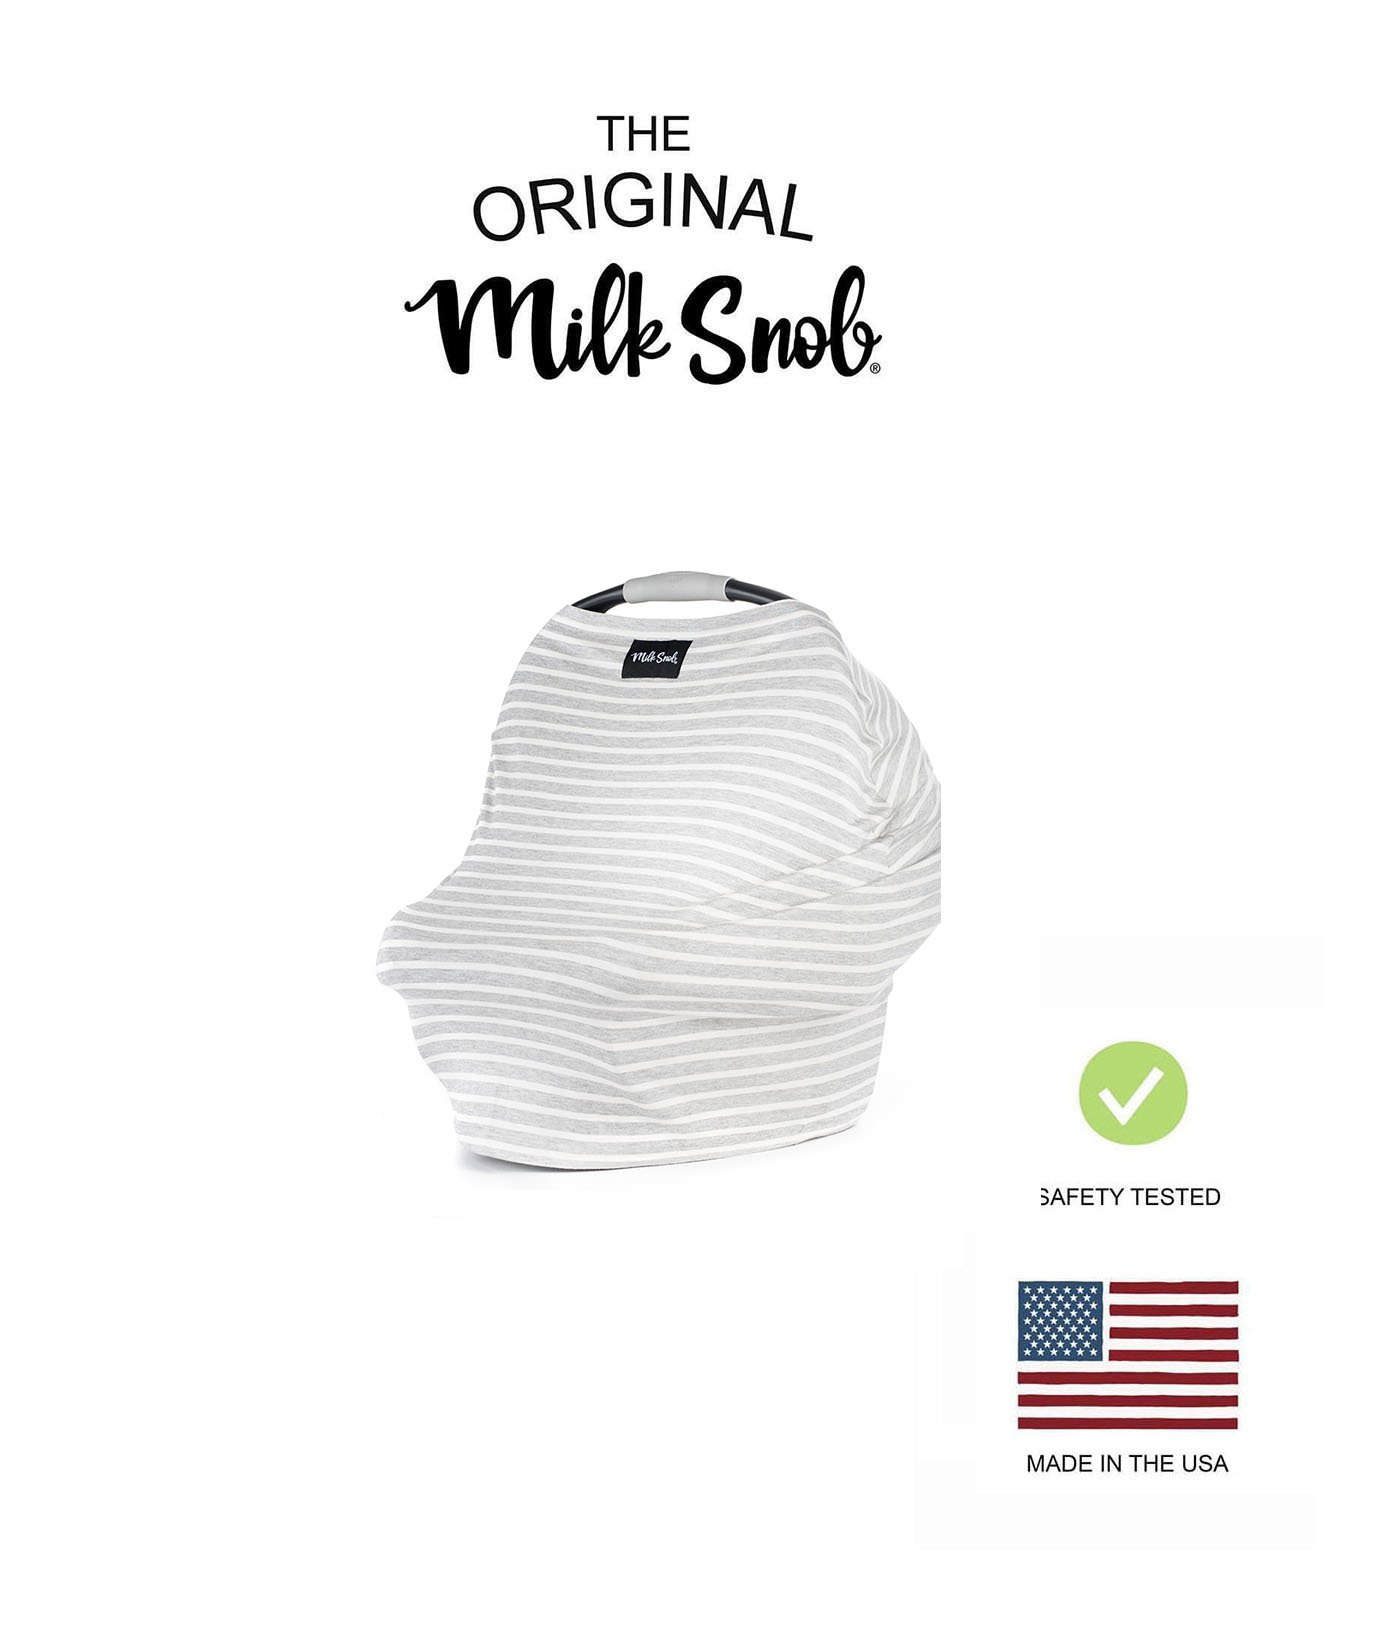 AS SEEN ON Shark Tank The Original Milk Snob Infant Car Seat Cover and Nursing Cover Multi-Use 360° Coverage Breathable Stretchy''Heather Stripe''